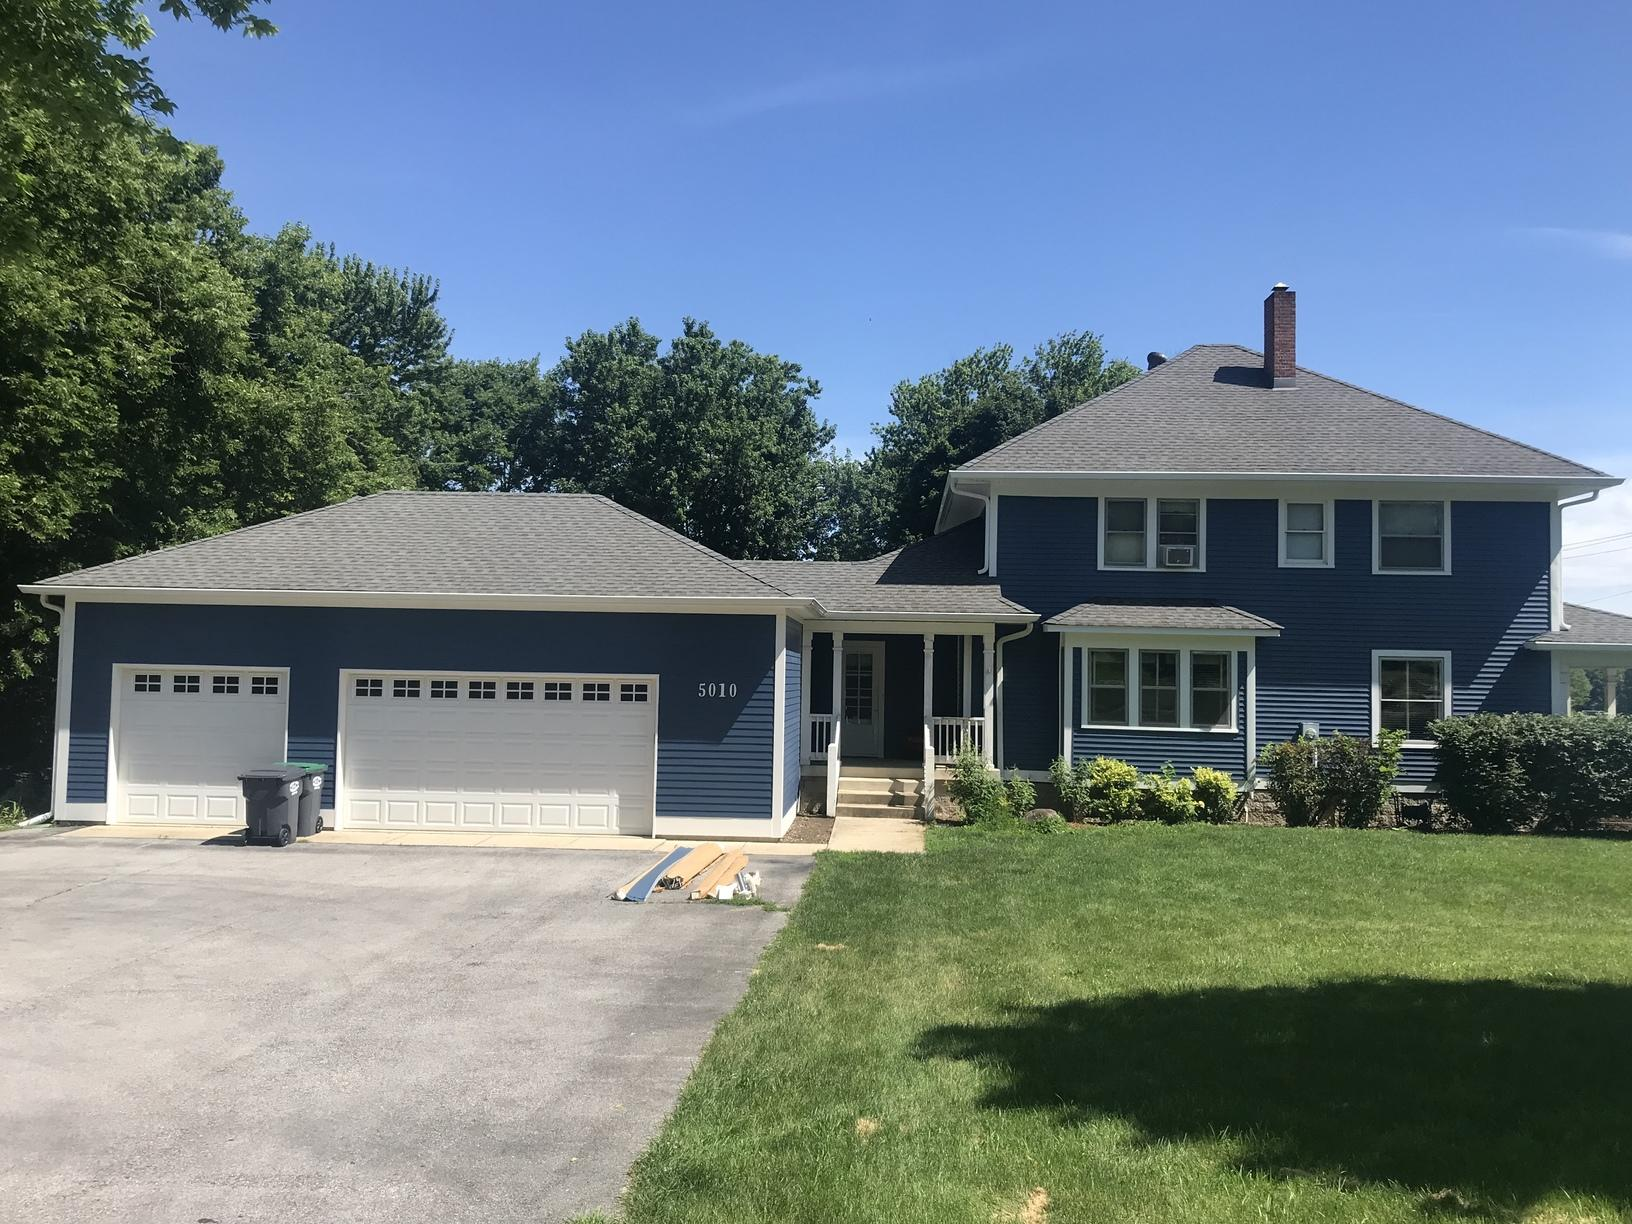 Siding Replacement Project in Greenwood, IN - After Photo